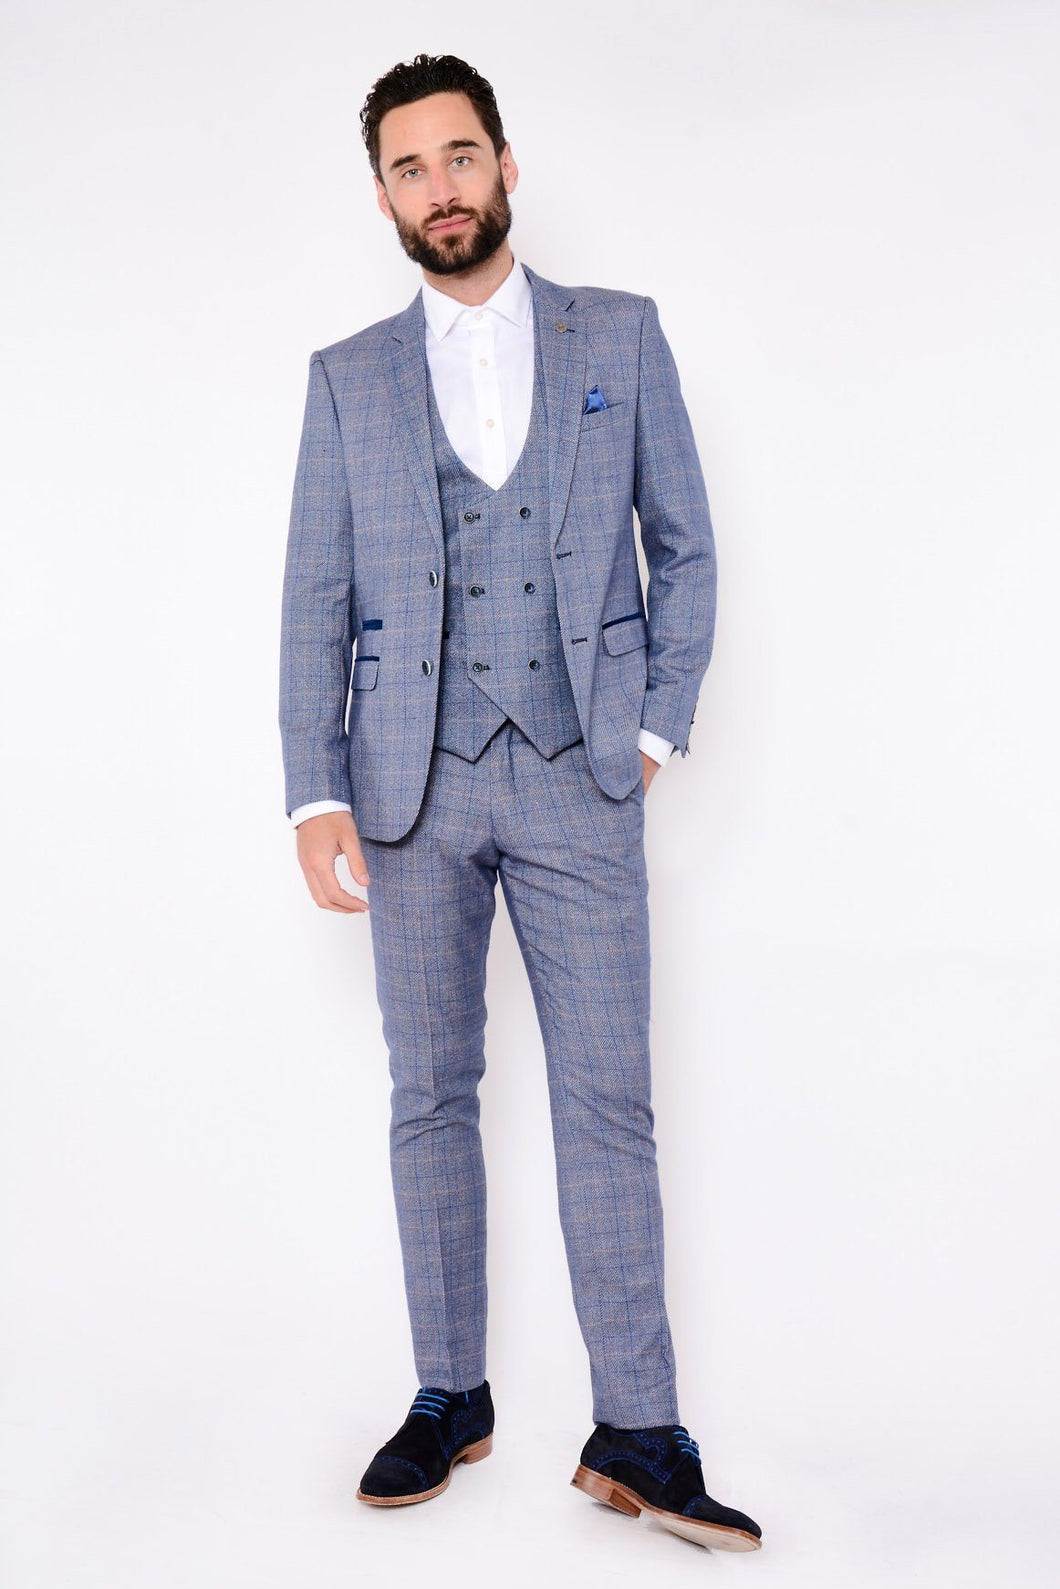 Marc Darcy: HARRY - Blue Tweed Suit With Double Breasted Waistcoat - Gilt Edged